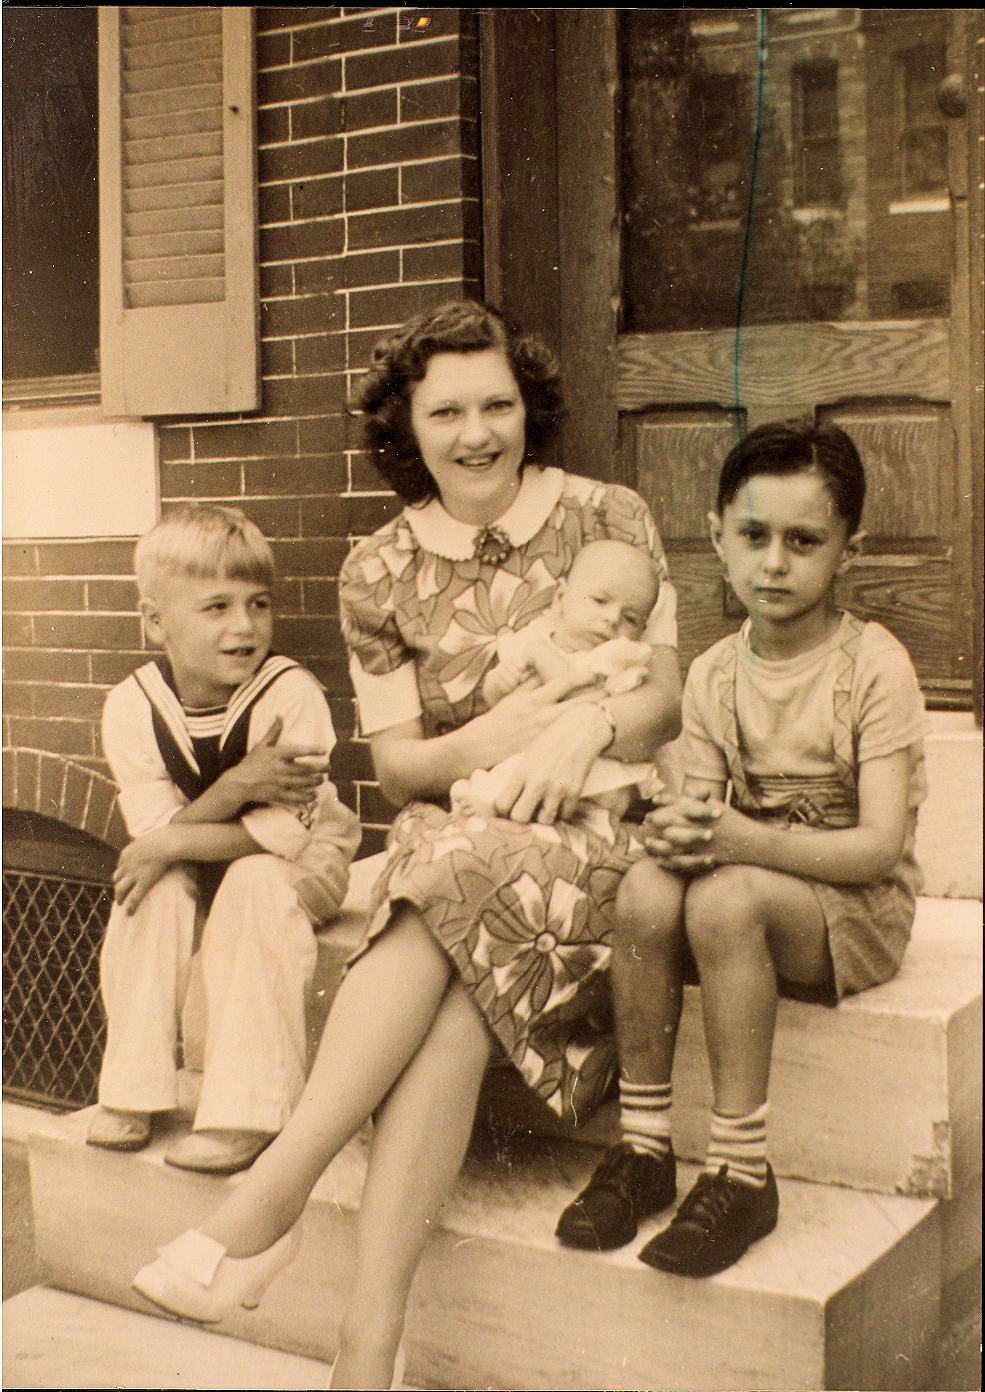 John Mason Rudolph Jr. (right) with first cousins Richard Stroup and baby Milton Stroup, and their mom Vera Price